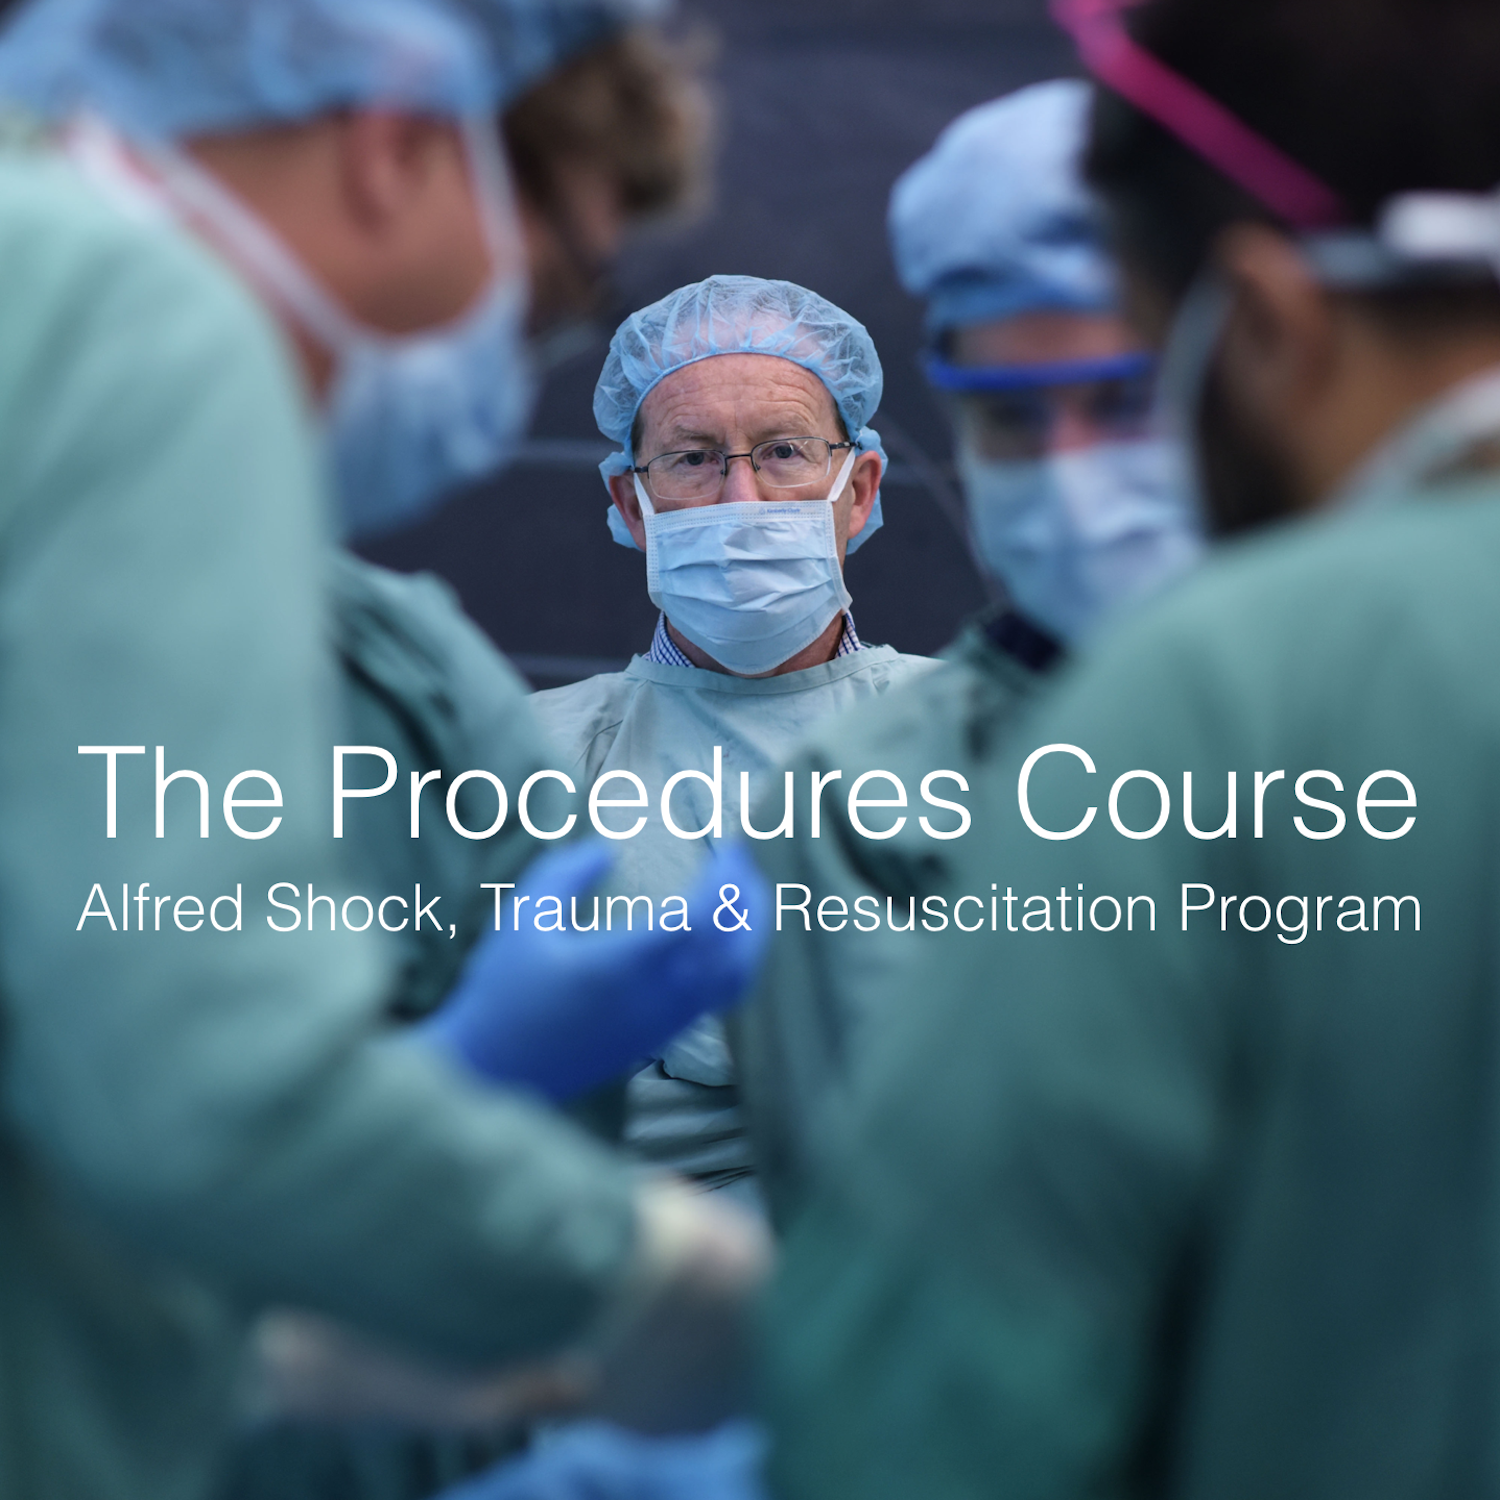 The Procedures Course Podcast